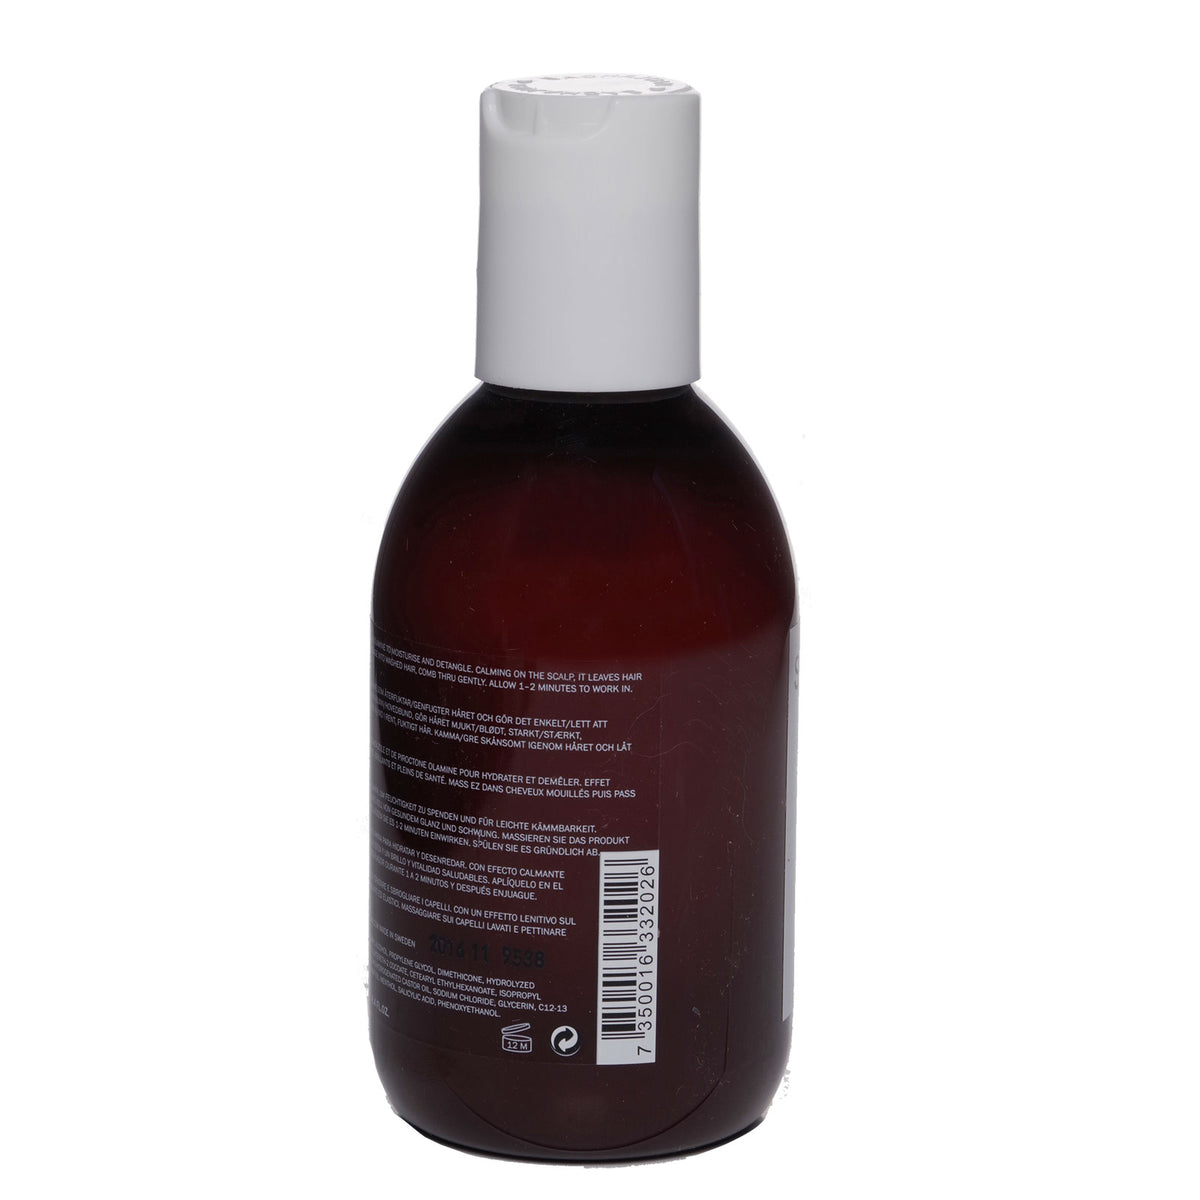 SACHA JUAN CONDITIONER NORMALIZING, Provides shine and moisture to hair - (250ML) (12/cs)